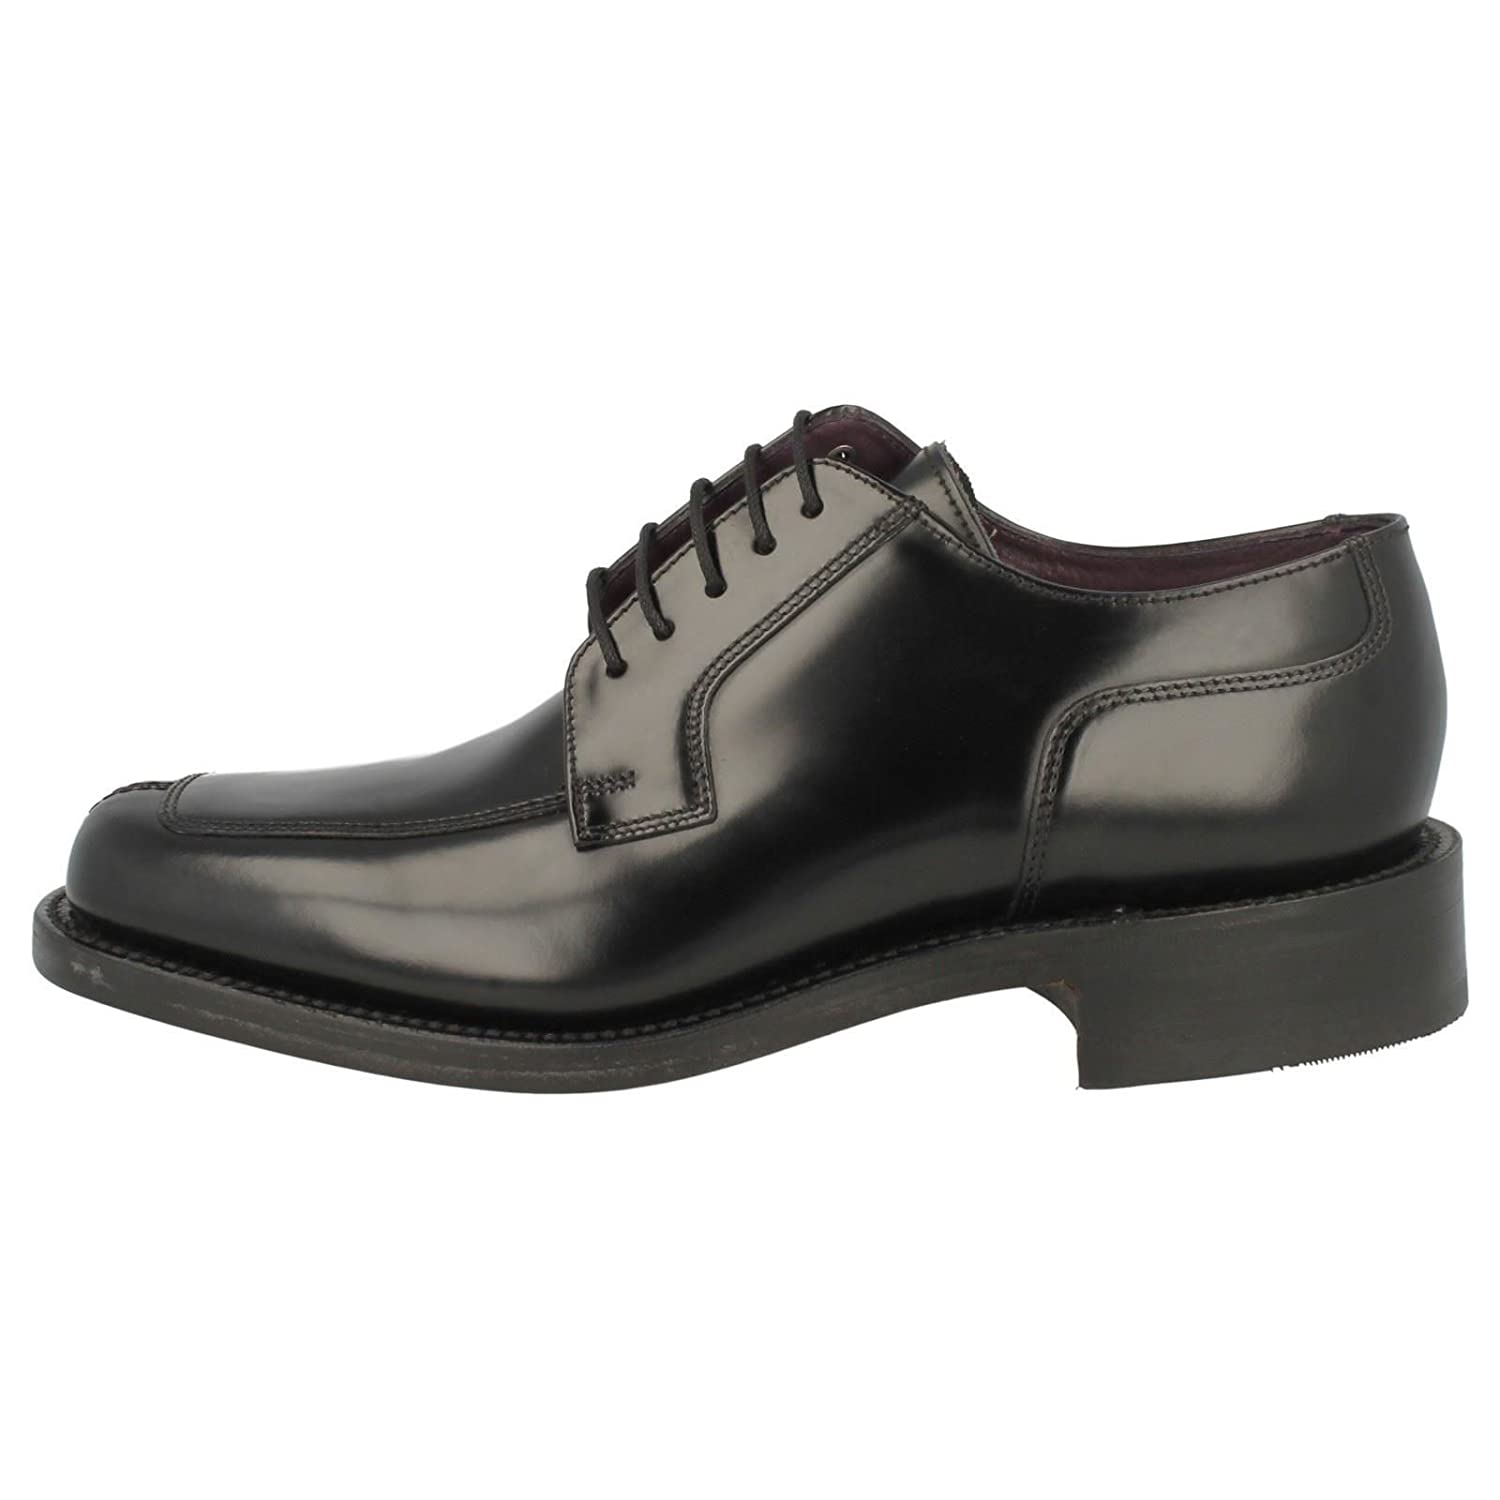 Herrenschuhe Mens Loake Lace Up Shoes *1303b* Business-schuhe